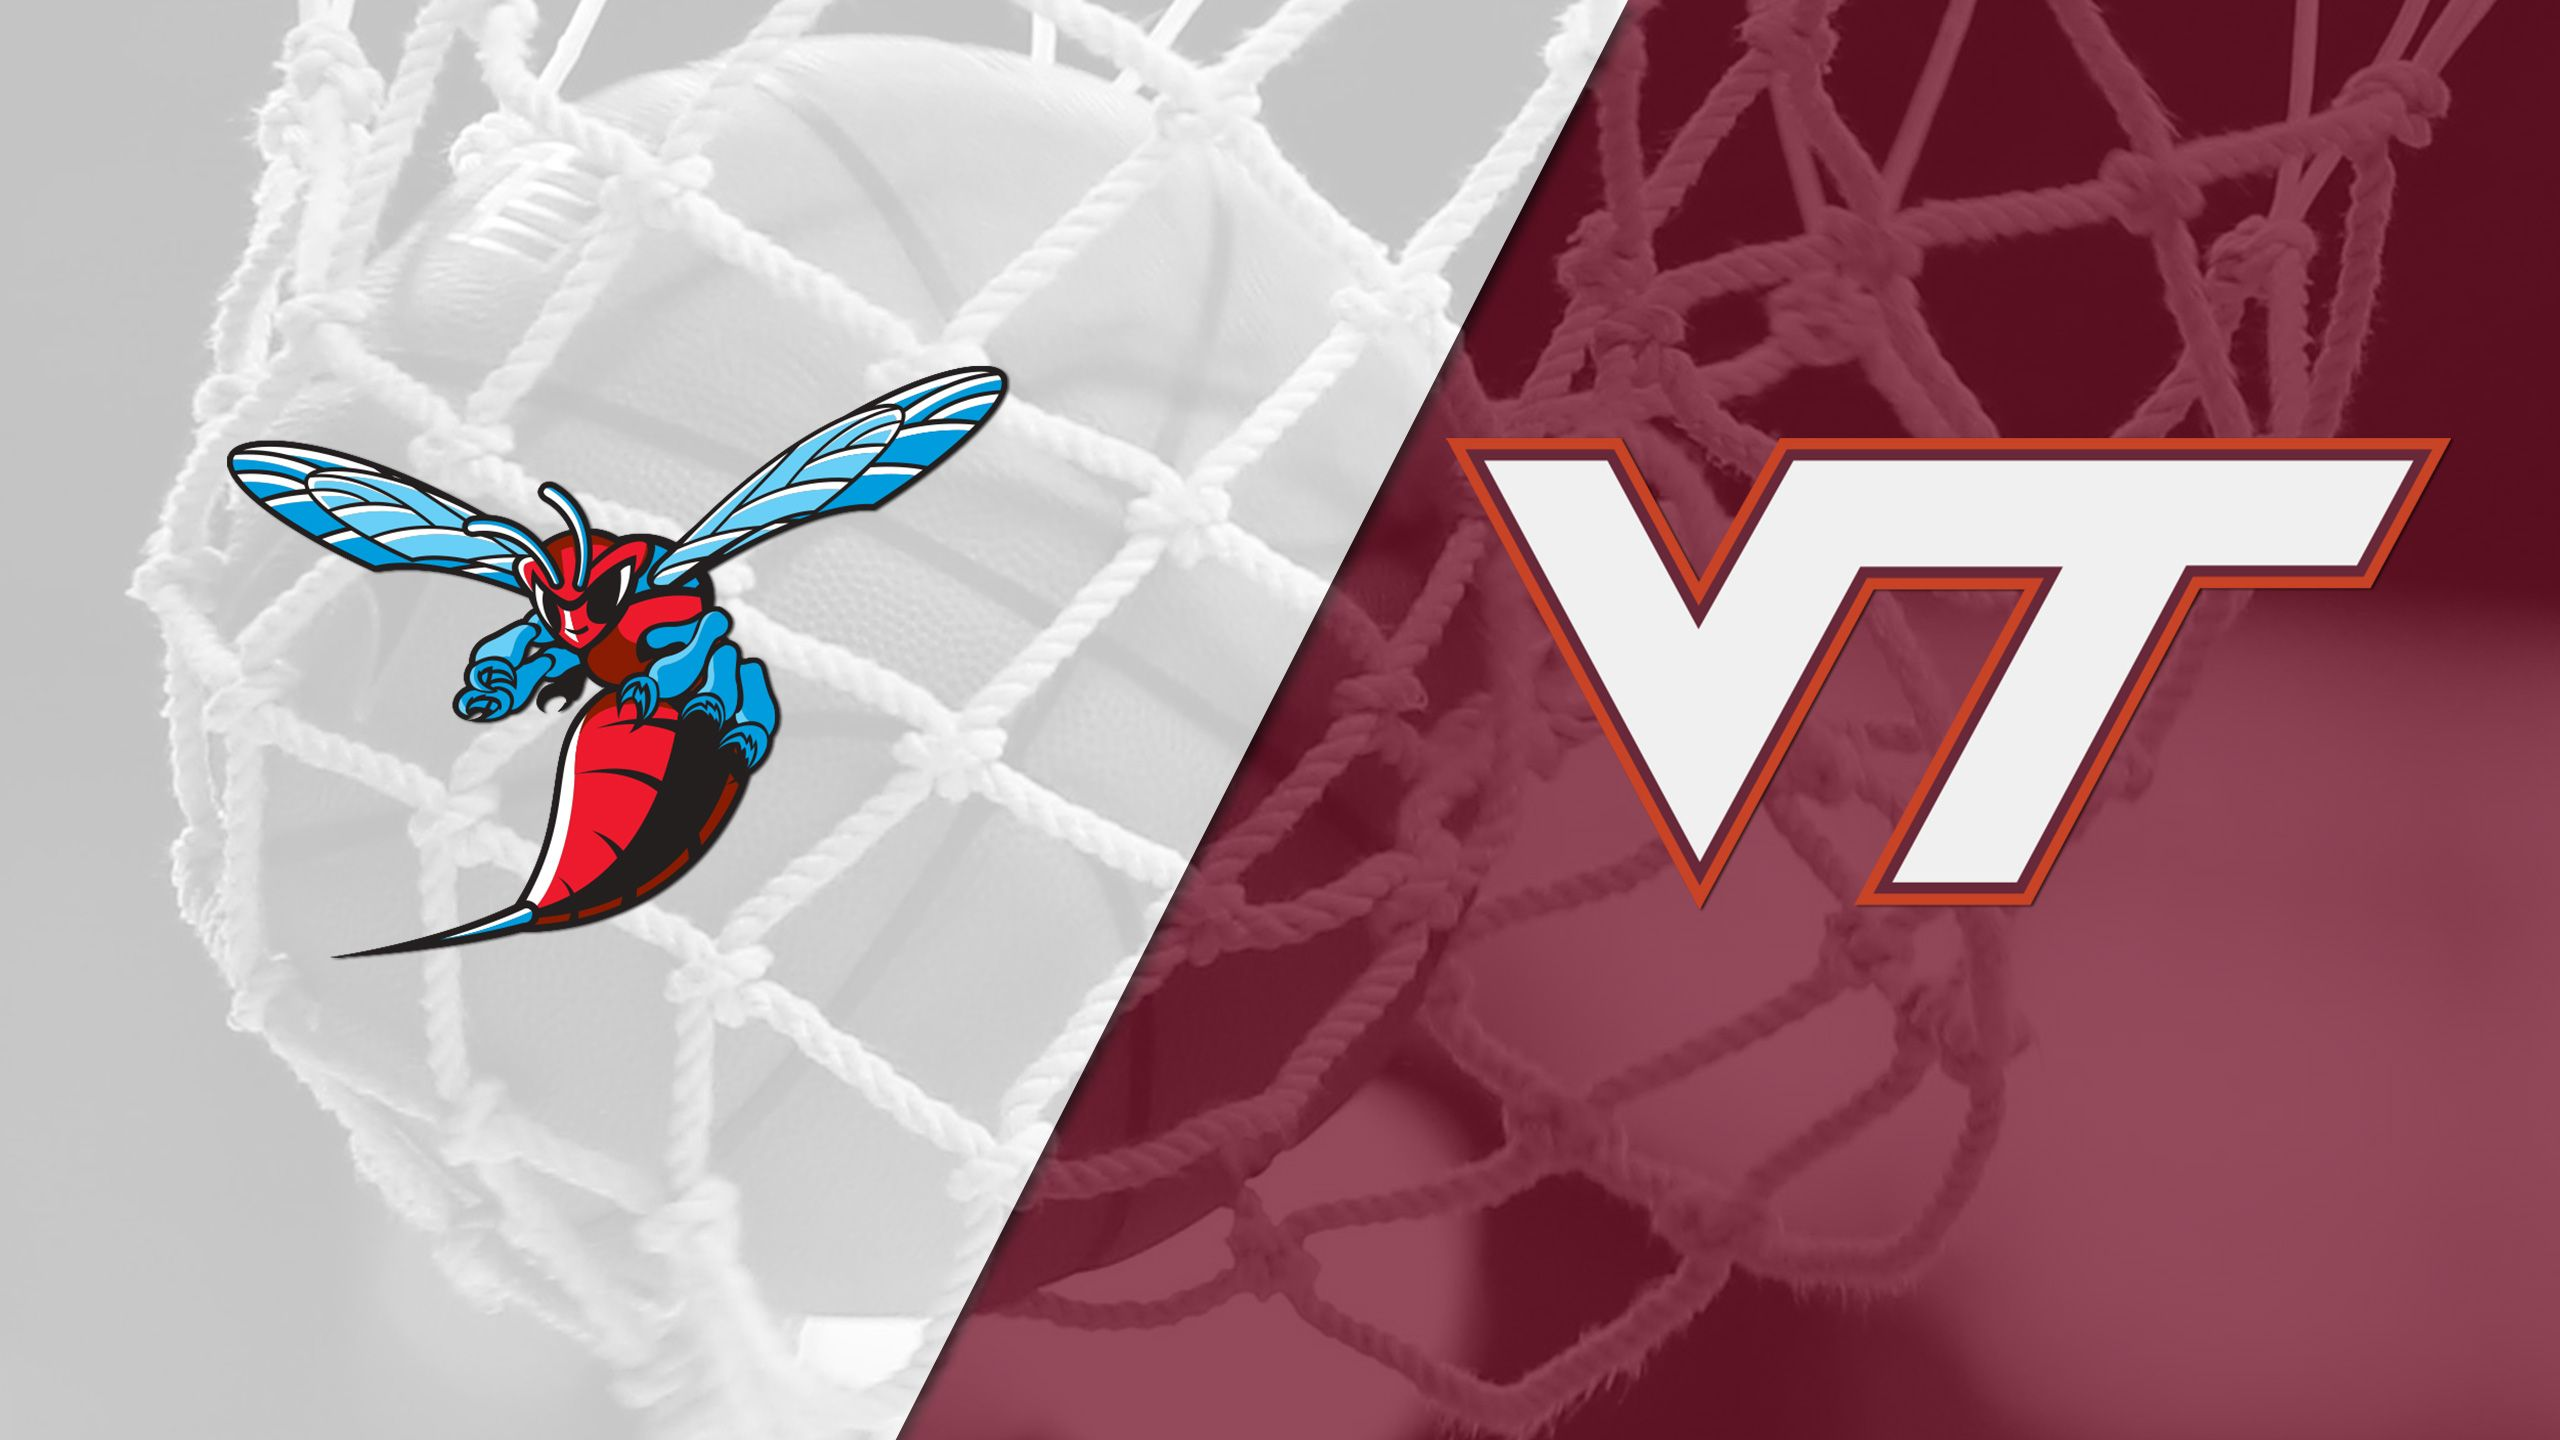 Delaware State vs. #19 Virginia Tech (W Basketball)